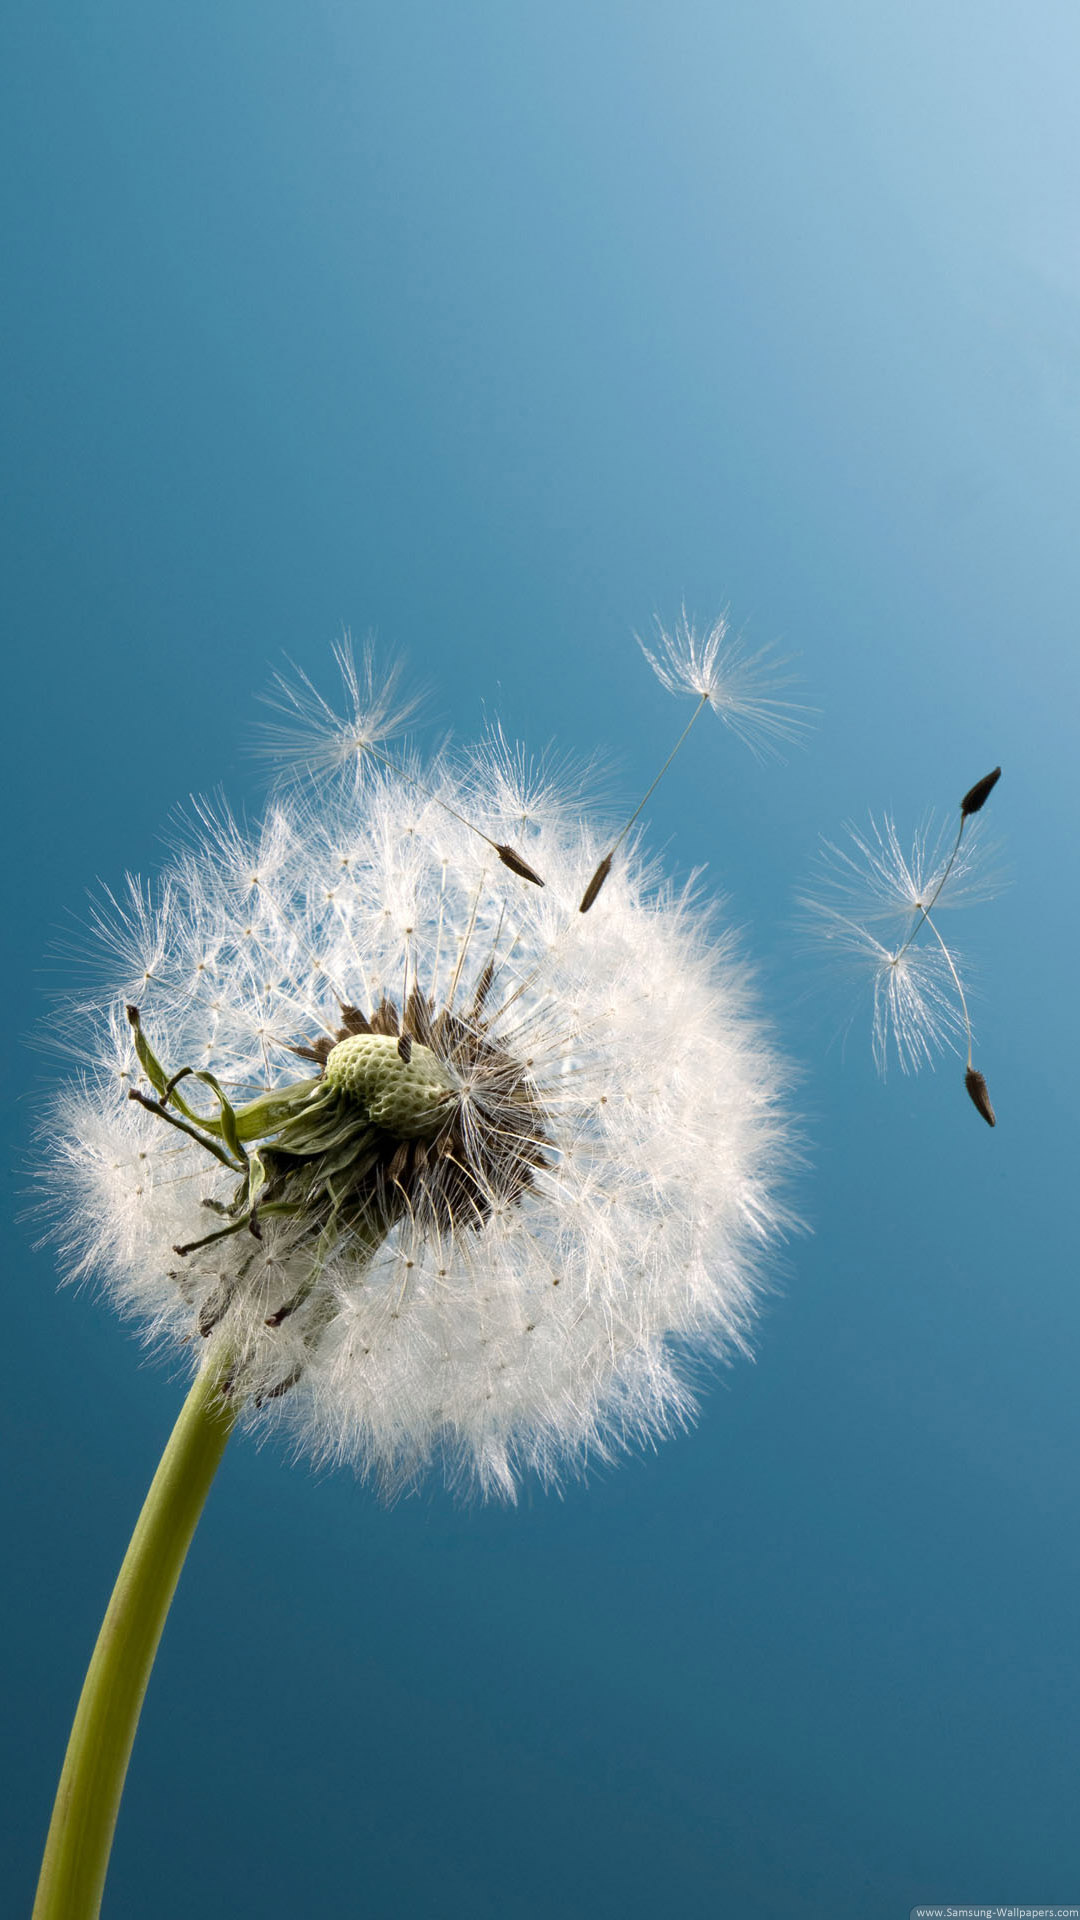 Dandelion Wind Blow Android Wallpaper download 1080x1920